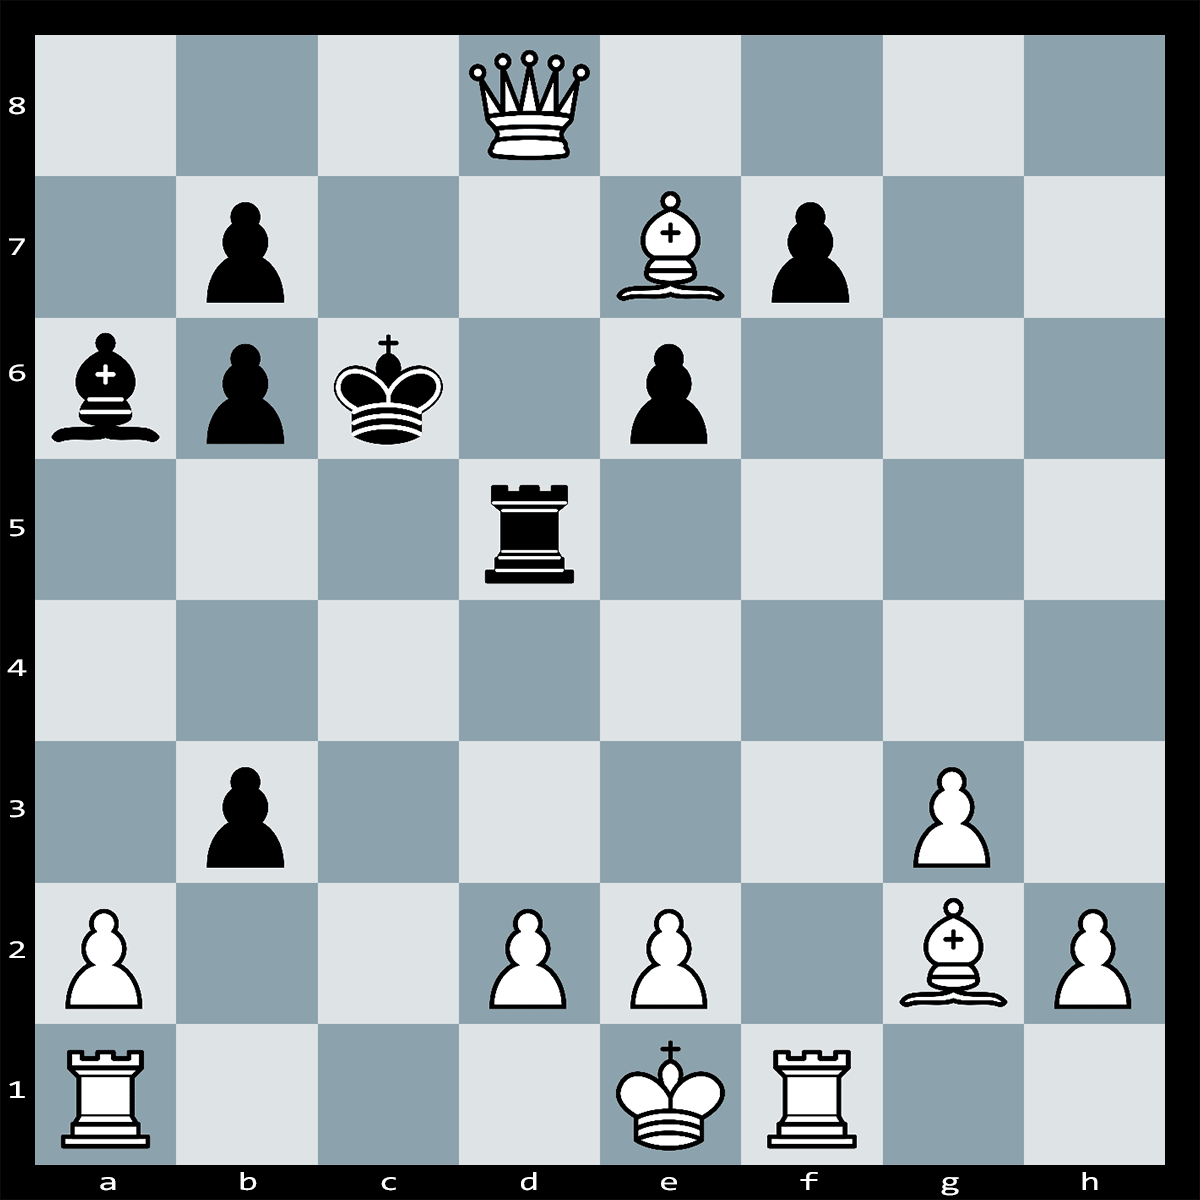 Mate in Two, White to Play - Chess Puzzle #67